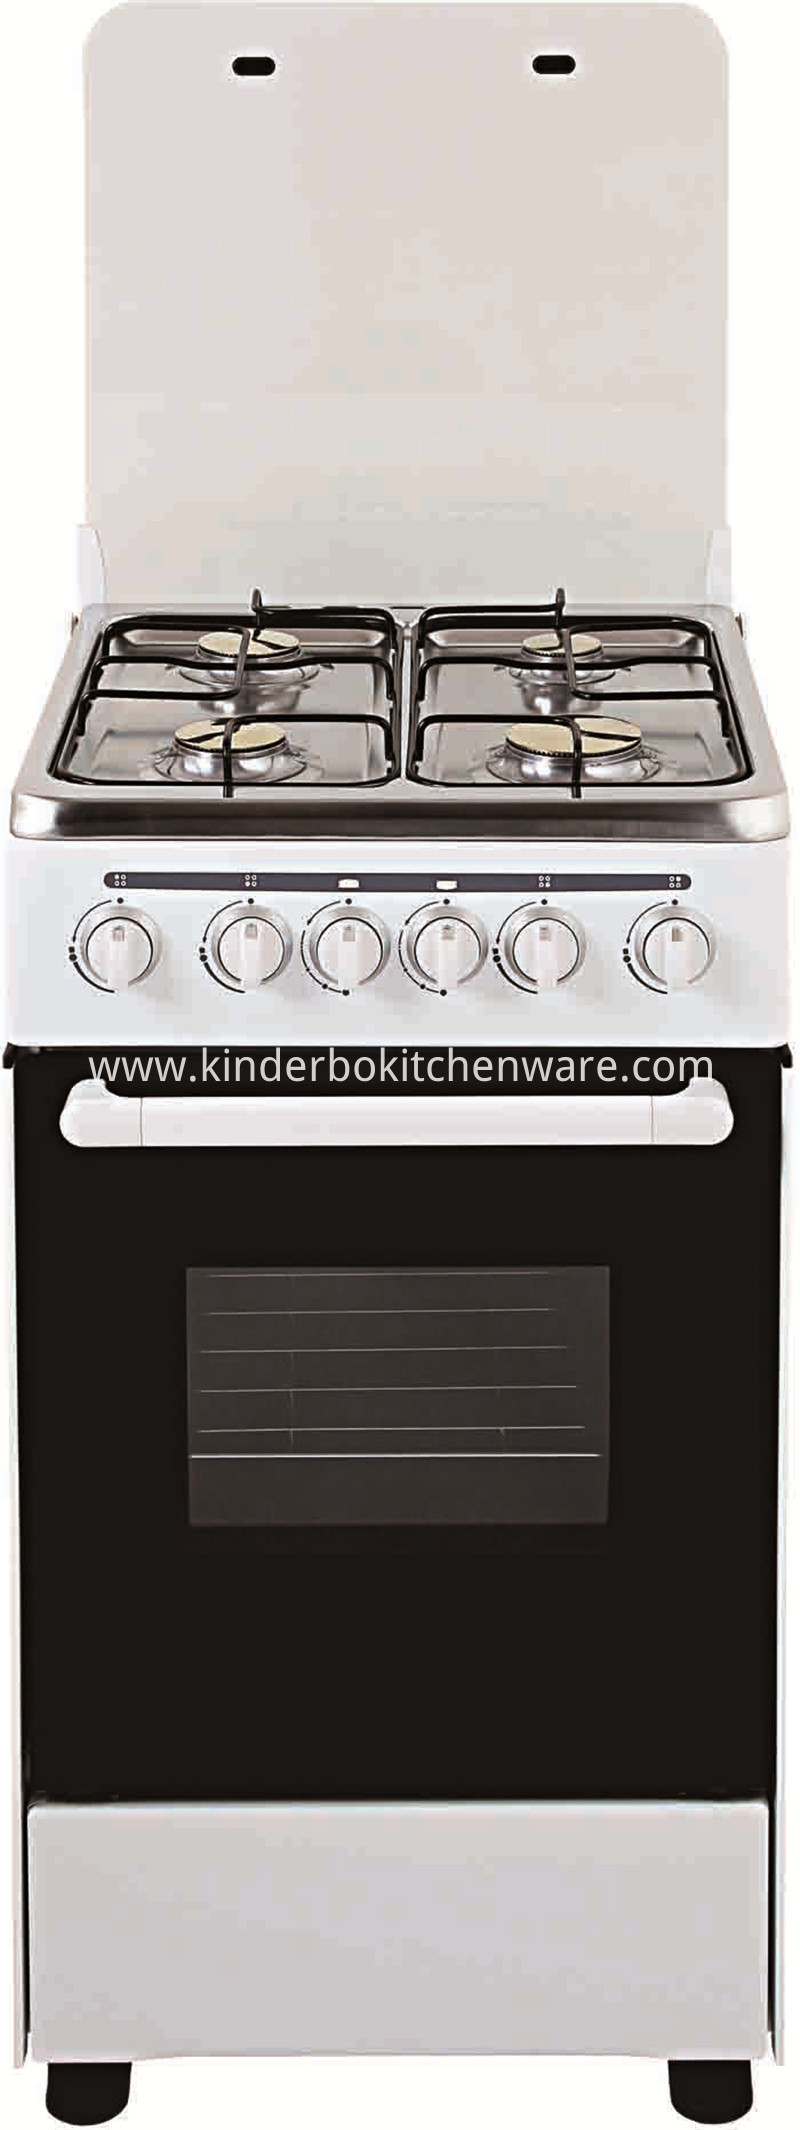 Best-Selling 4 Burner Gas Cooker With Oven Gas Buner Stove Made Of Stainless Steel